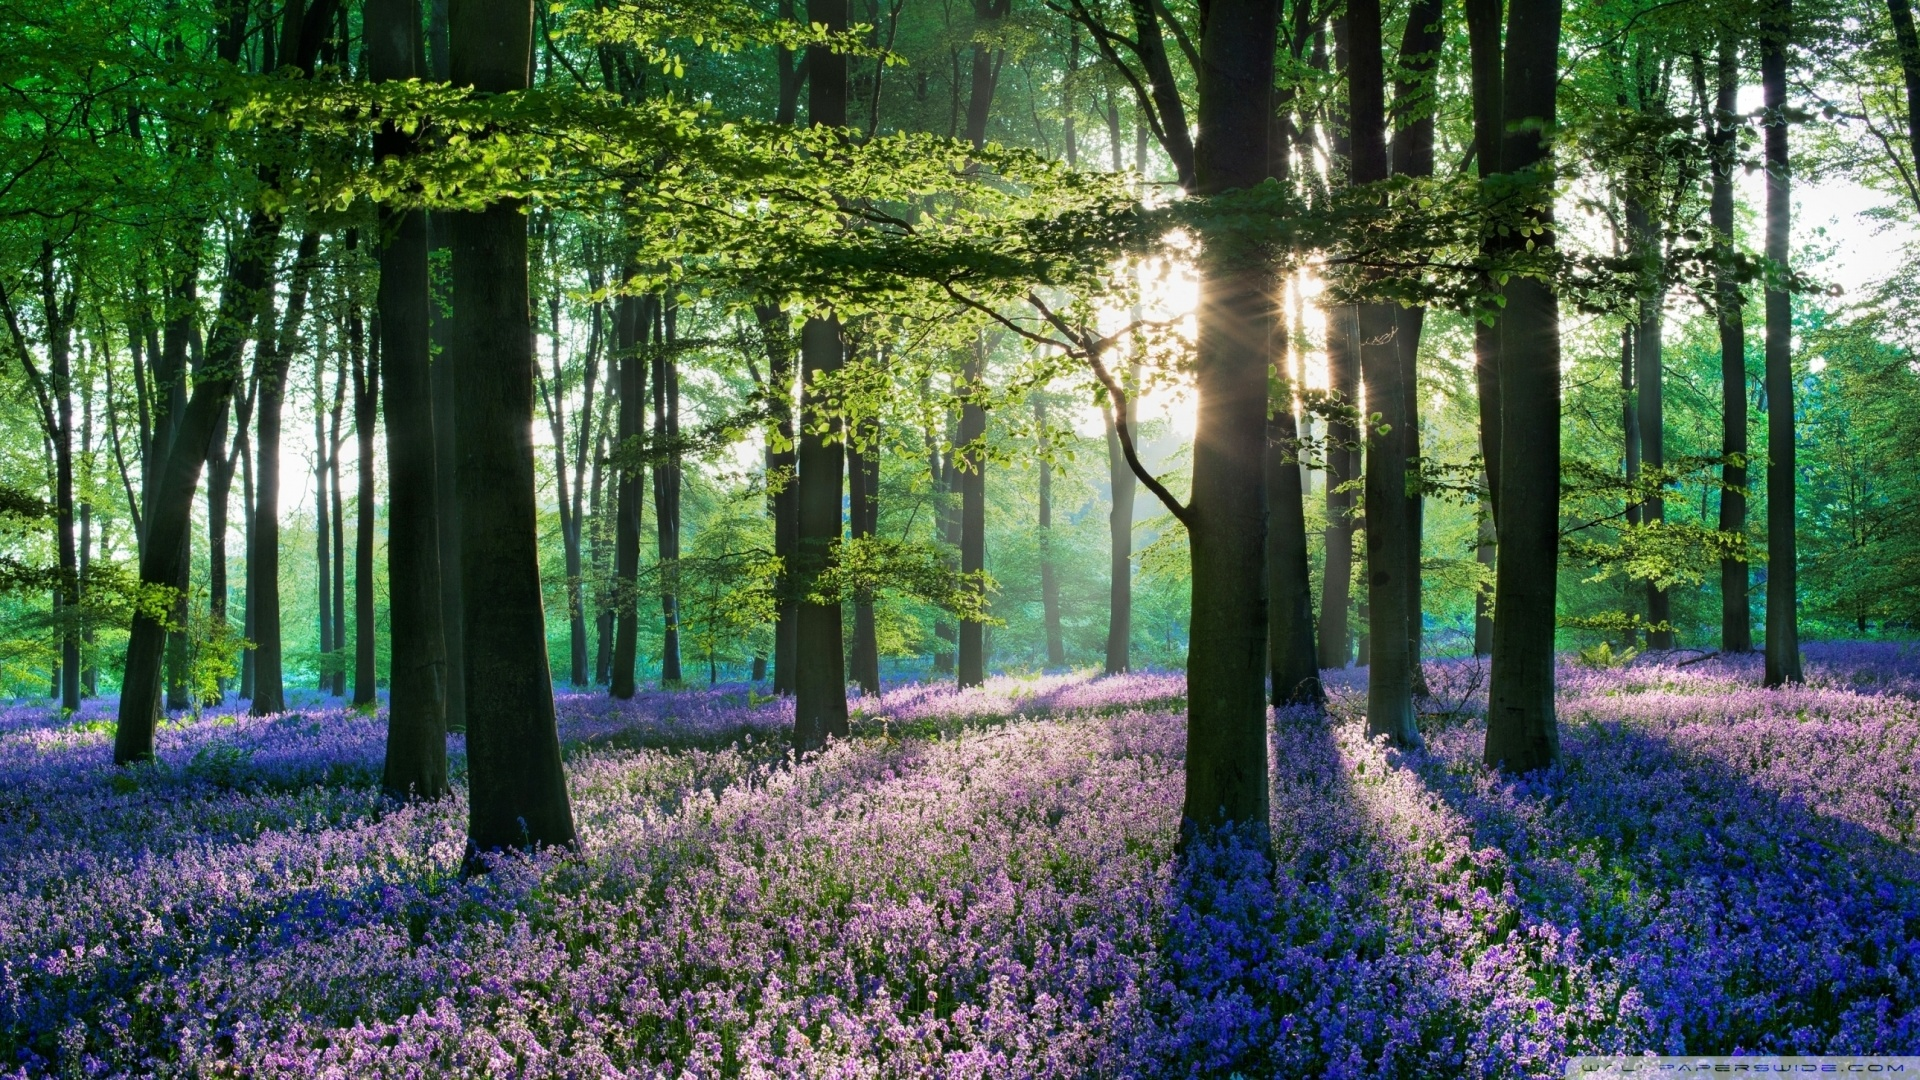 violet_forest_flowers_field-wallpaper-1920x1080